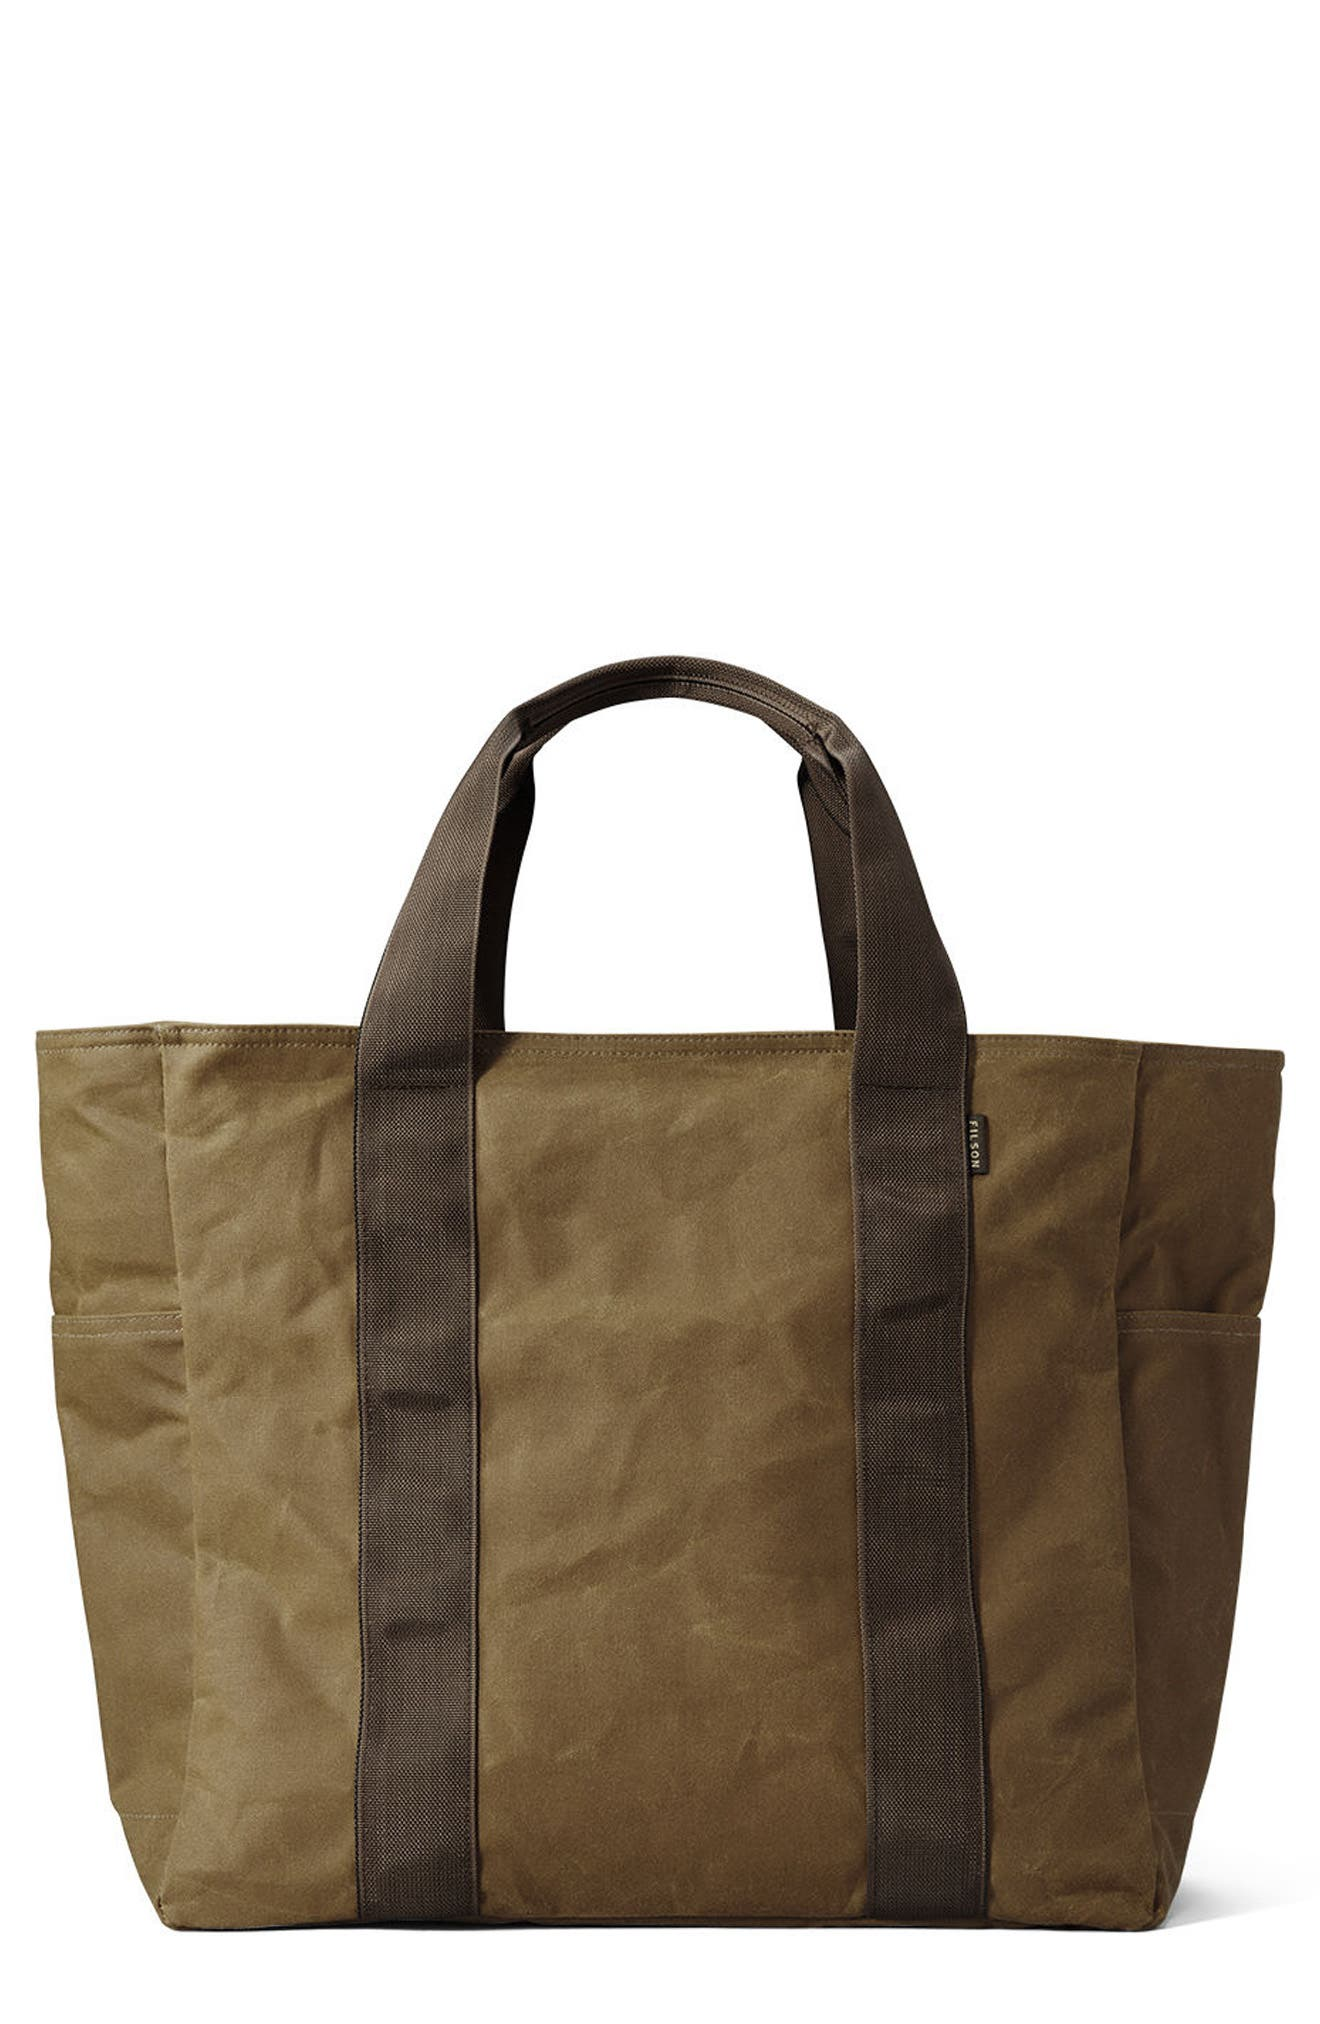 Large Grab 'n' Go Tote Bag,                             Main thumbnail 1, color,                             DARK TAN/ BROWN